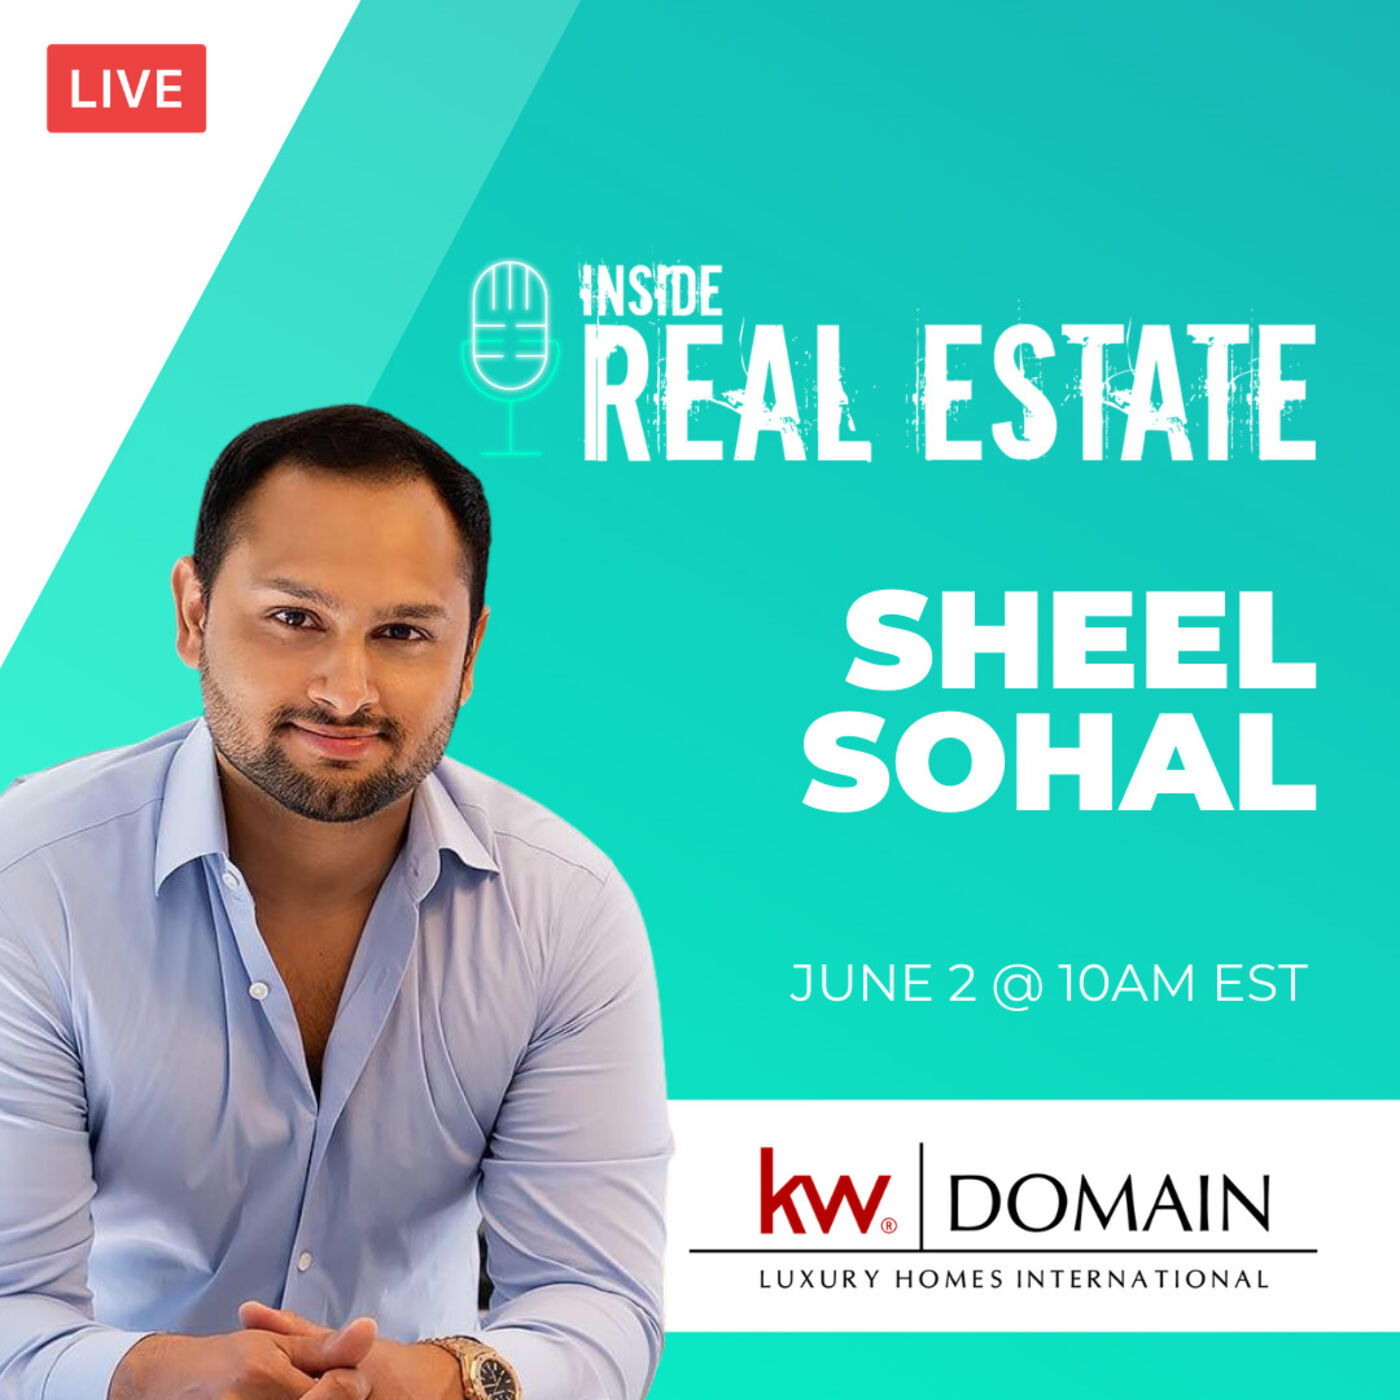 Sheel Sohal, KW Domain: Luxury Homes International - High End Sales, Recent Changes, and More